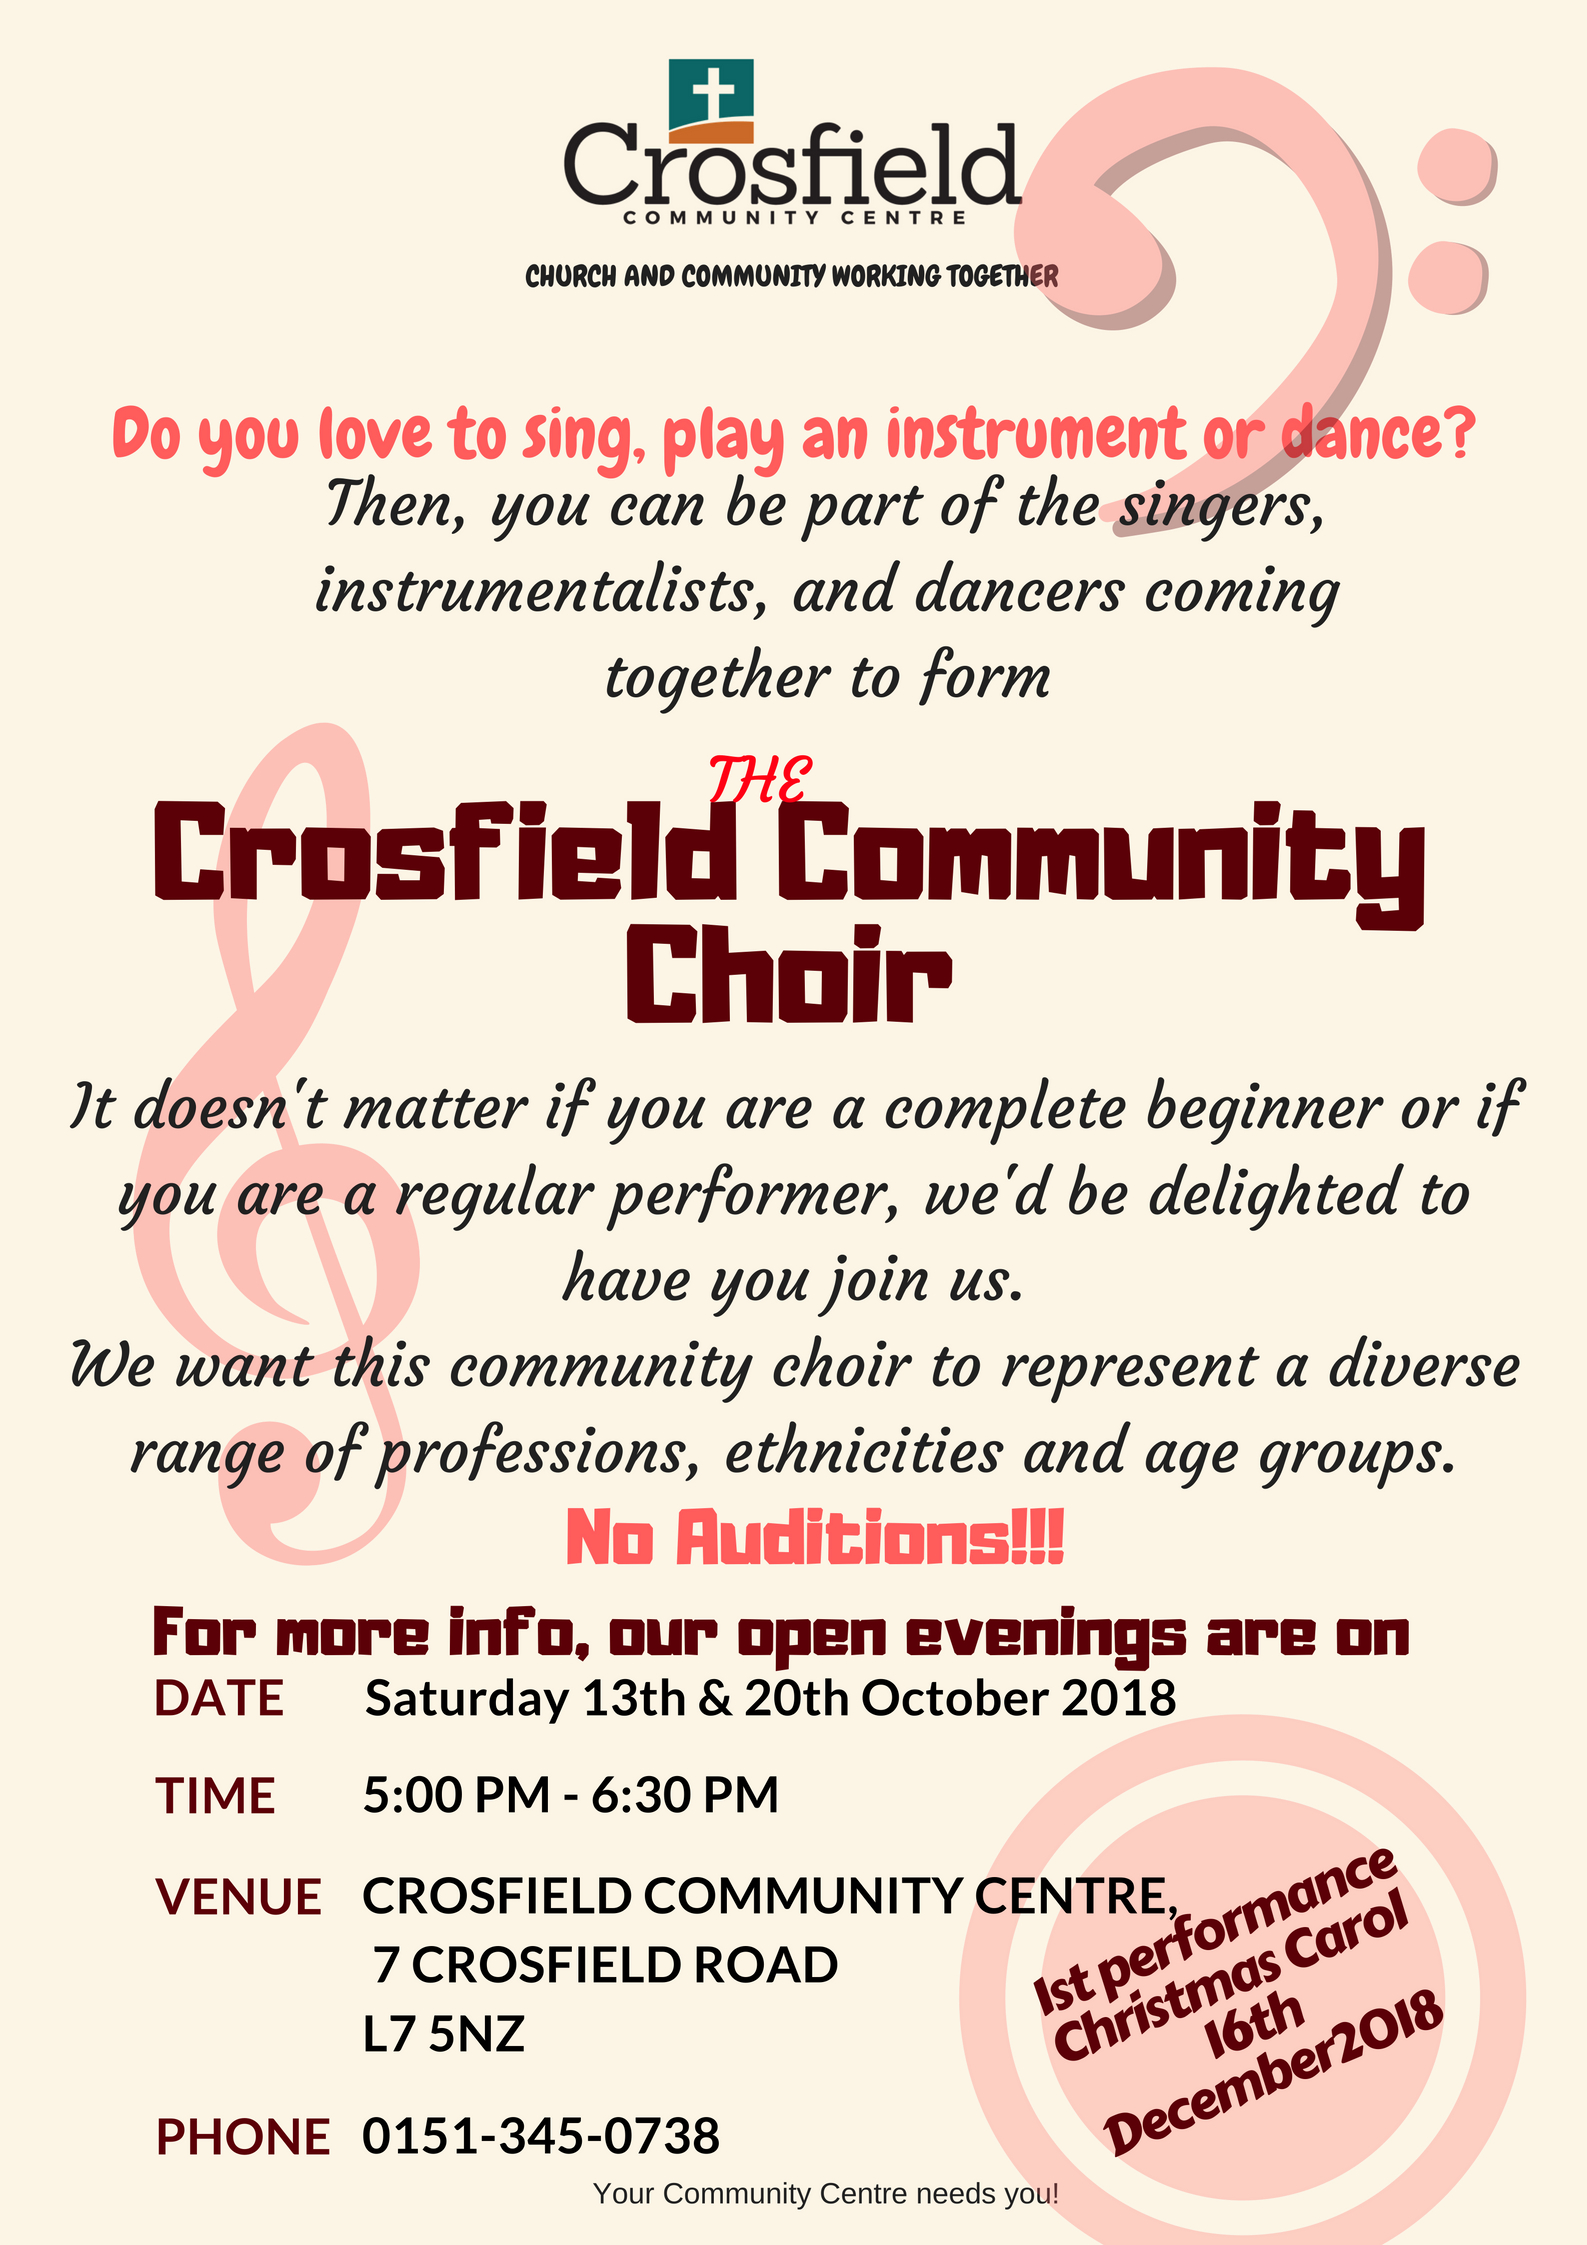 Crosfield Community Choir 1st open evening @ Crosfield Community Centre